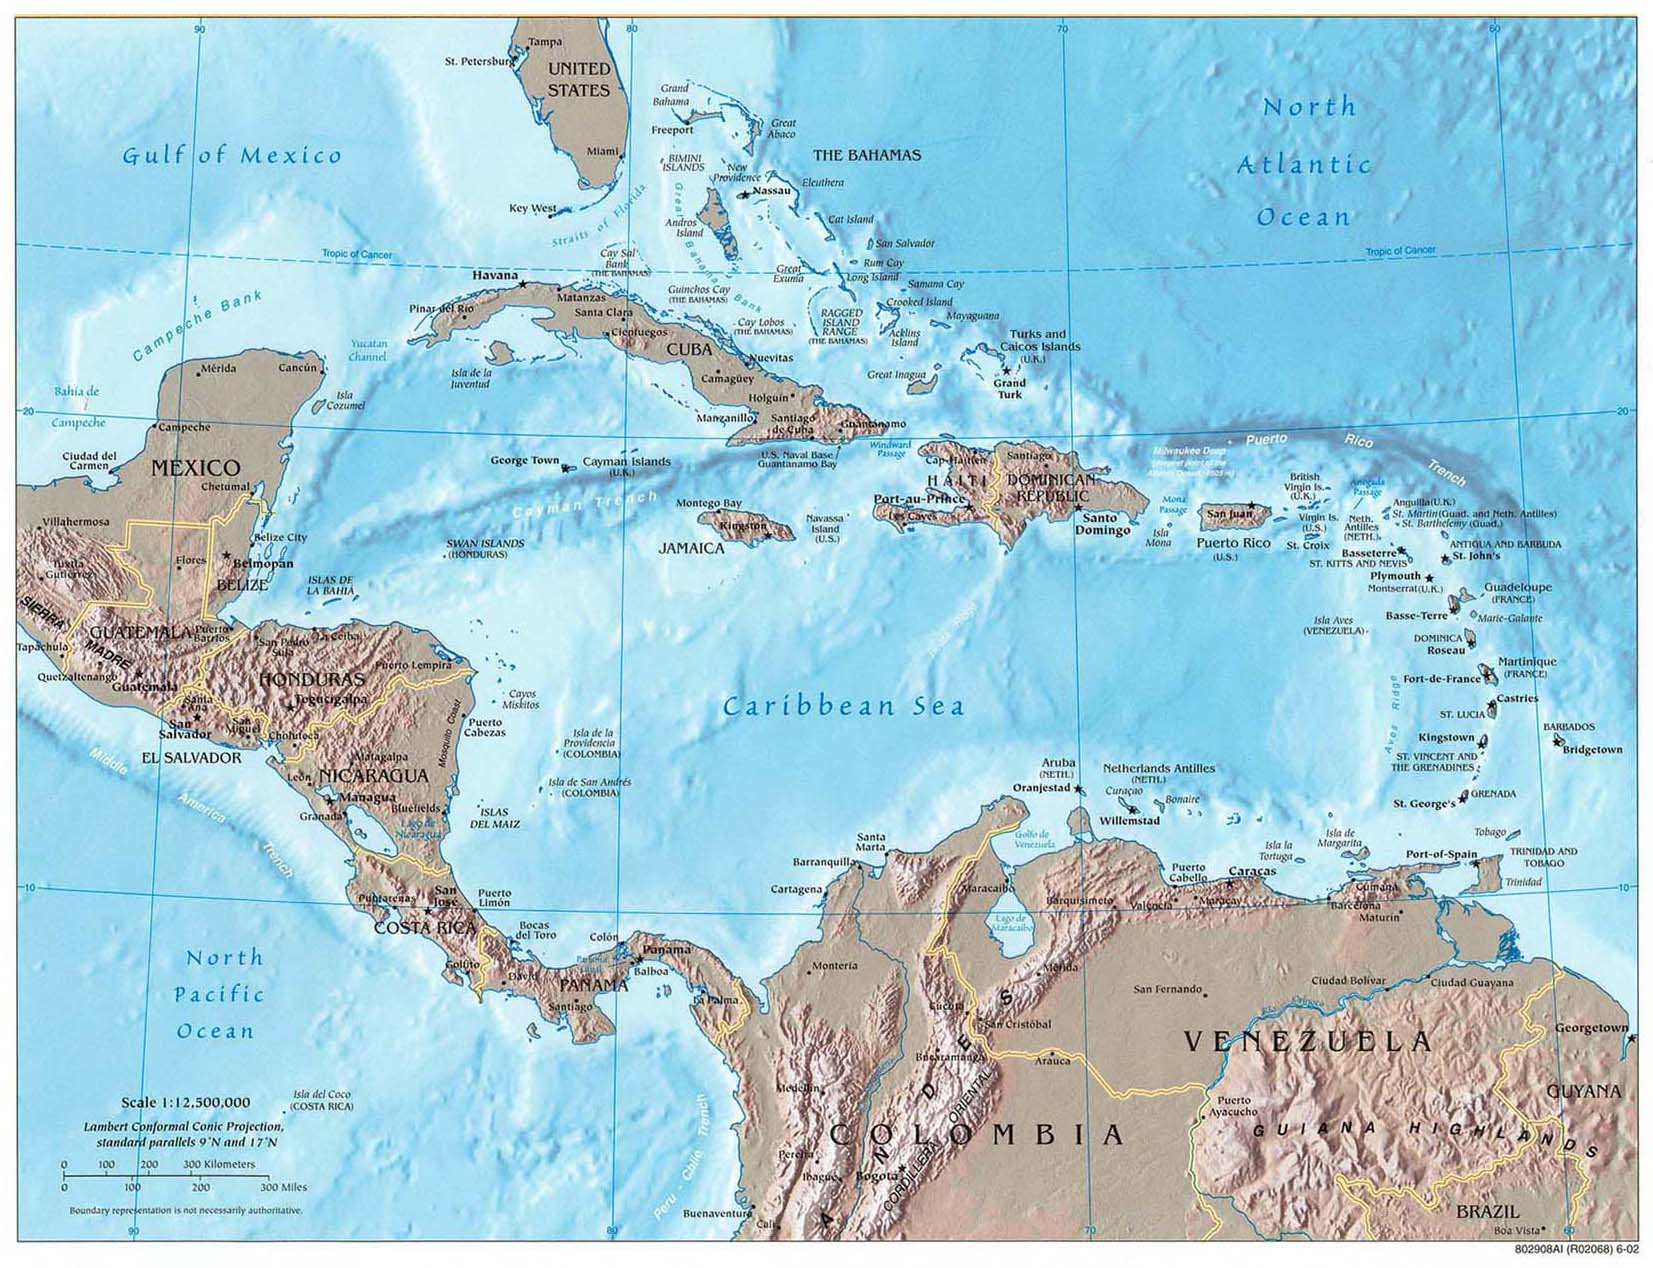 Reference map of Central America and the Caribbean